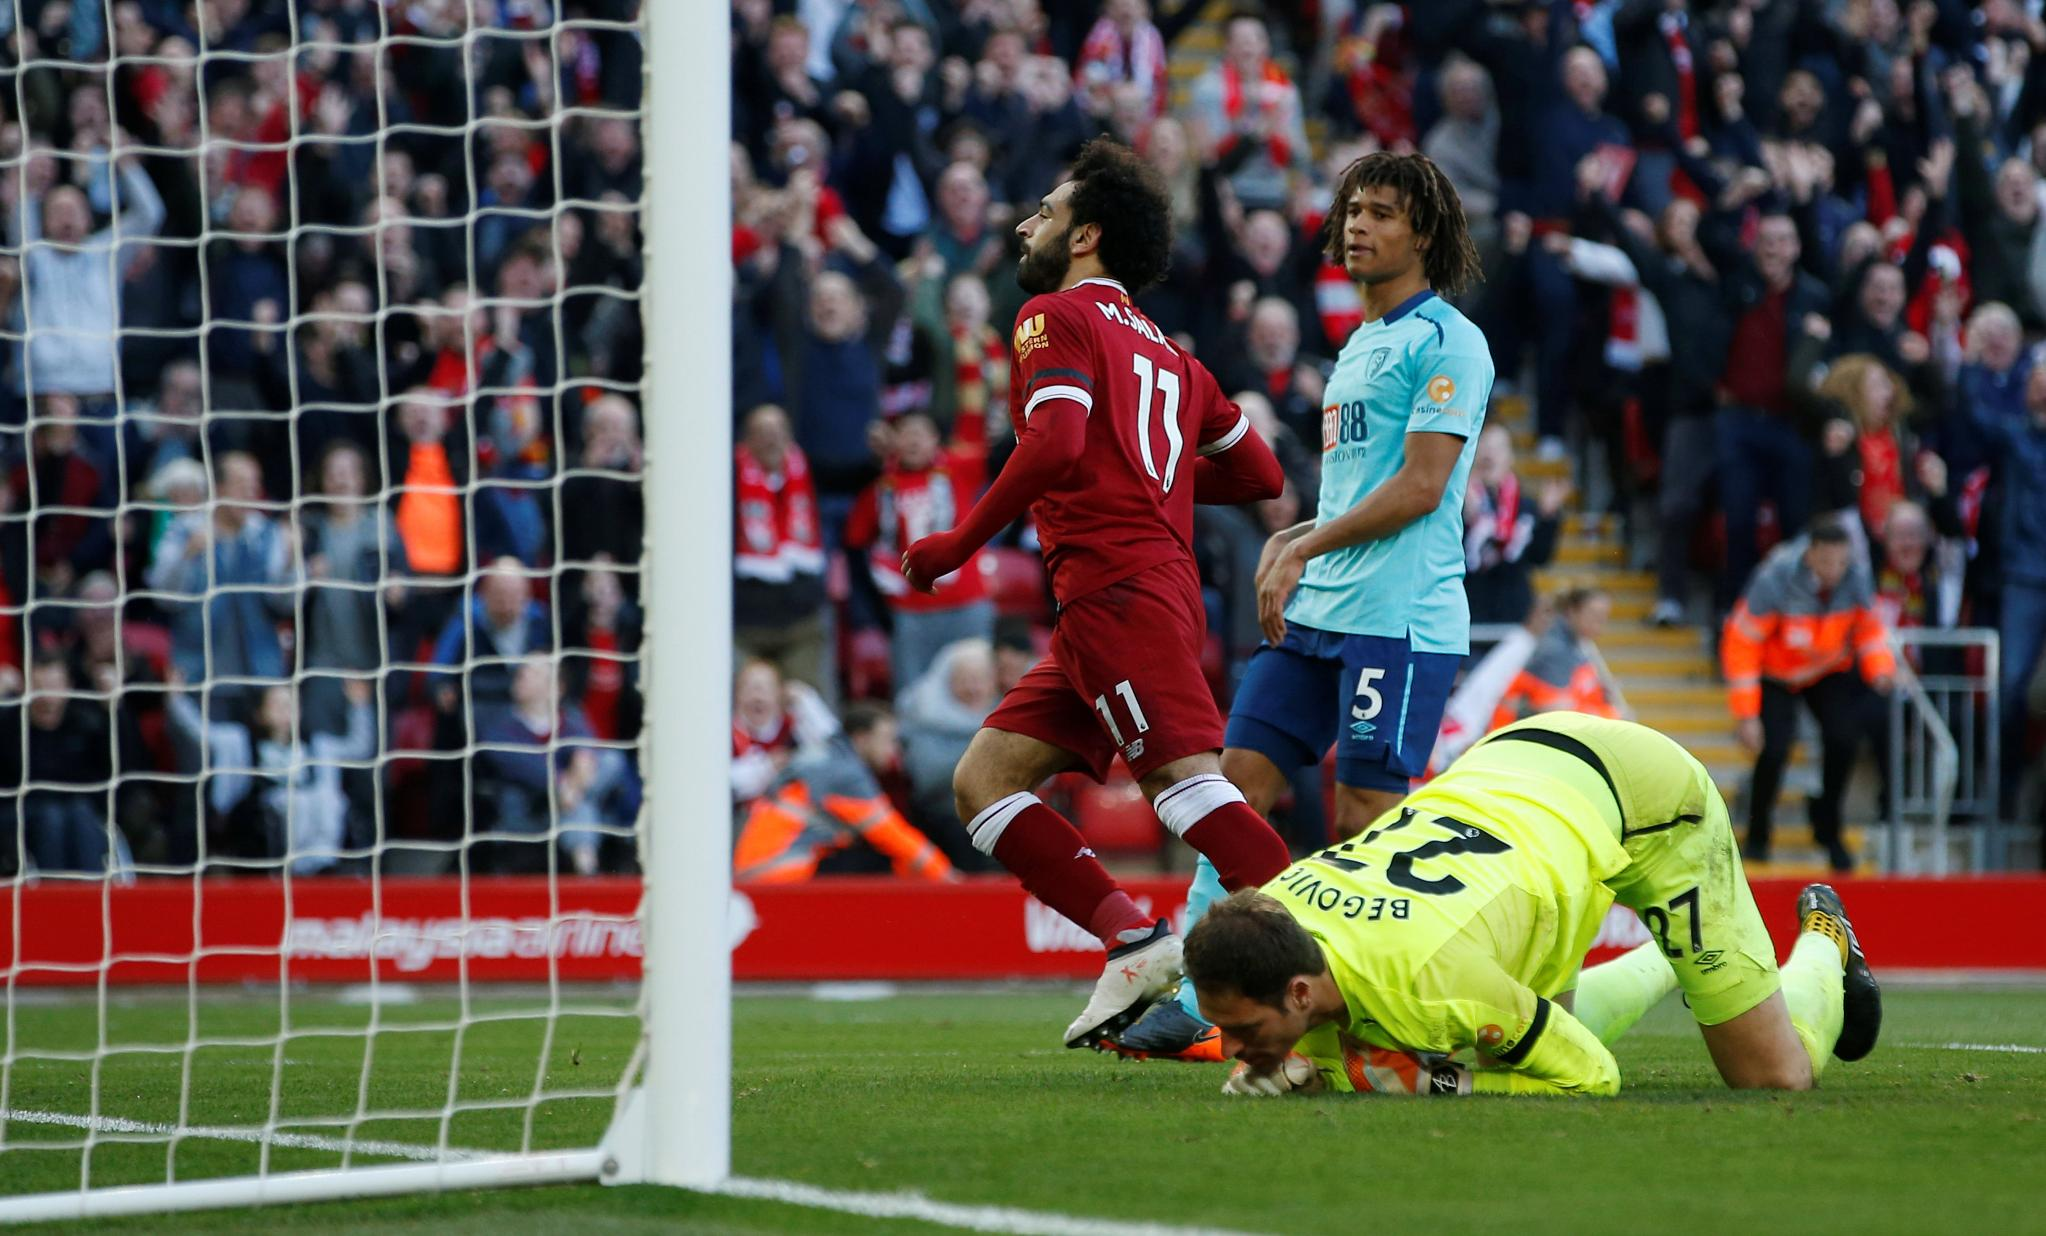 Salah, Mane Score Historic Goals As Liverpool Ease Past Bournemouth